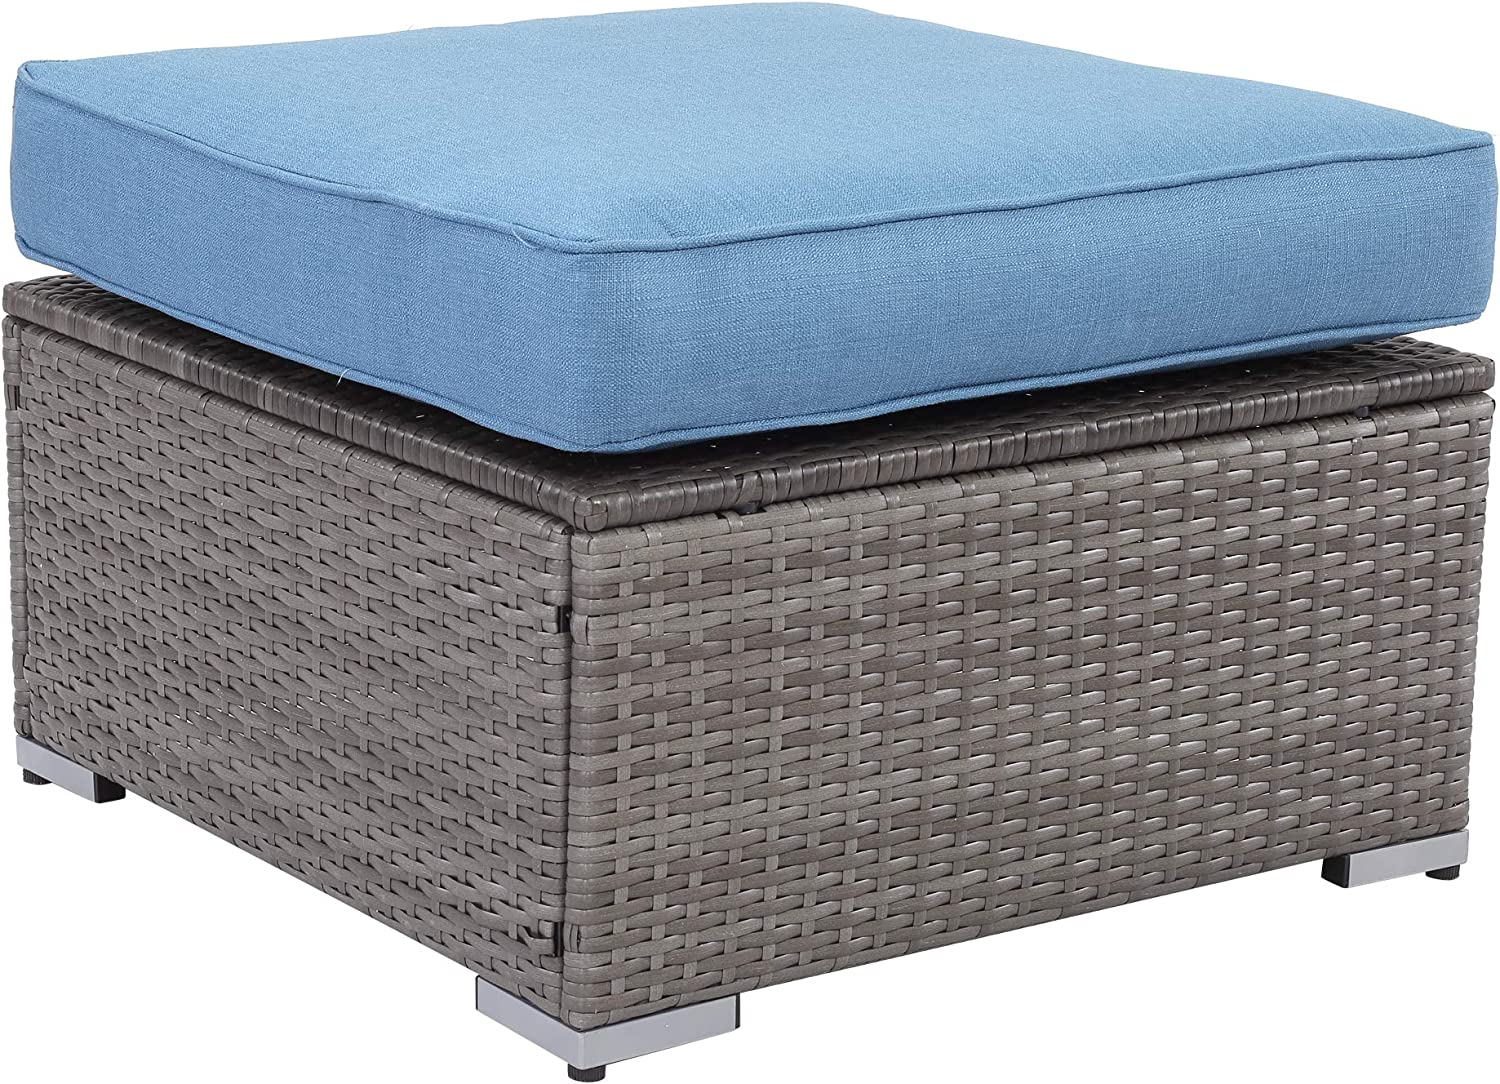 Wisteria Lane Outdoor Popular Patio Furniture All Ottoman Weather Popular shop is the lowest price challenge for W